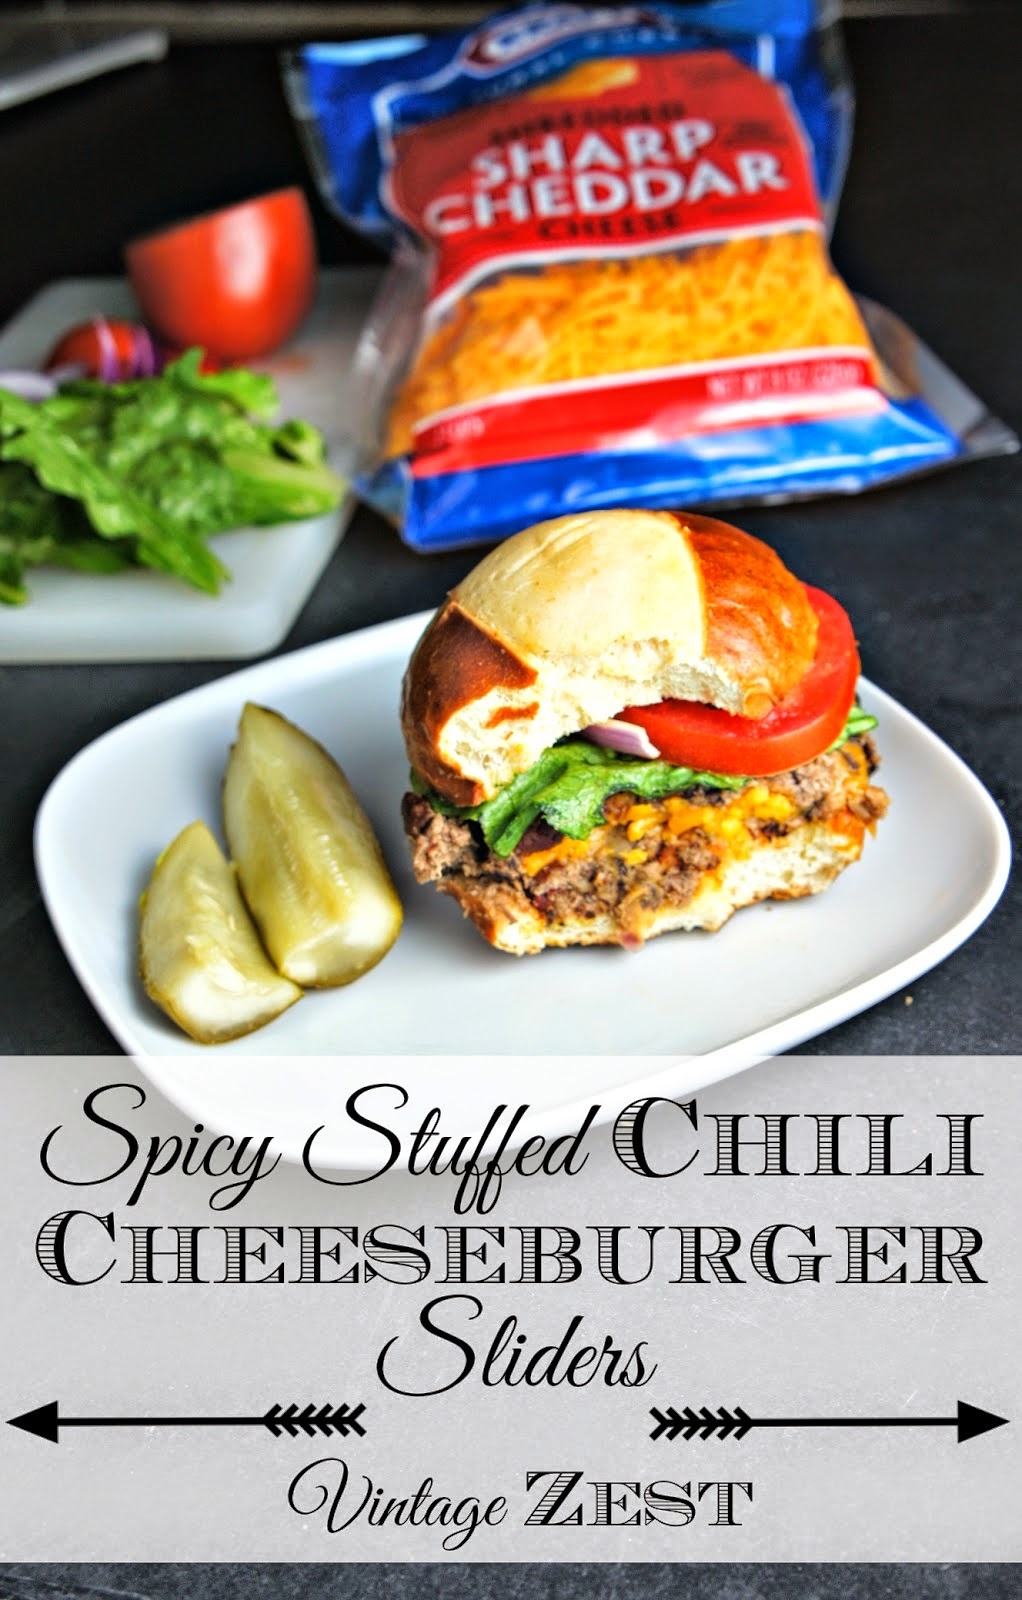 Spicy Stuffed Chilie Cheeseburger Sliders